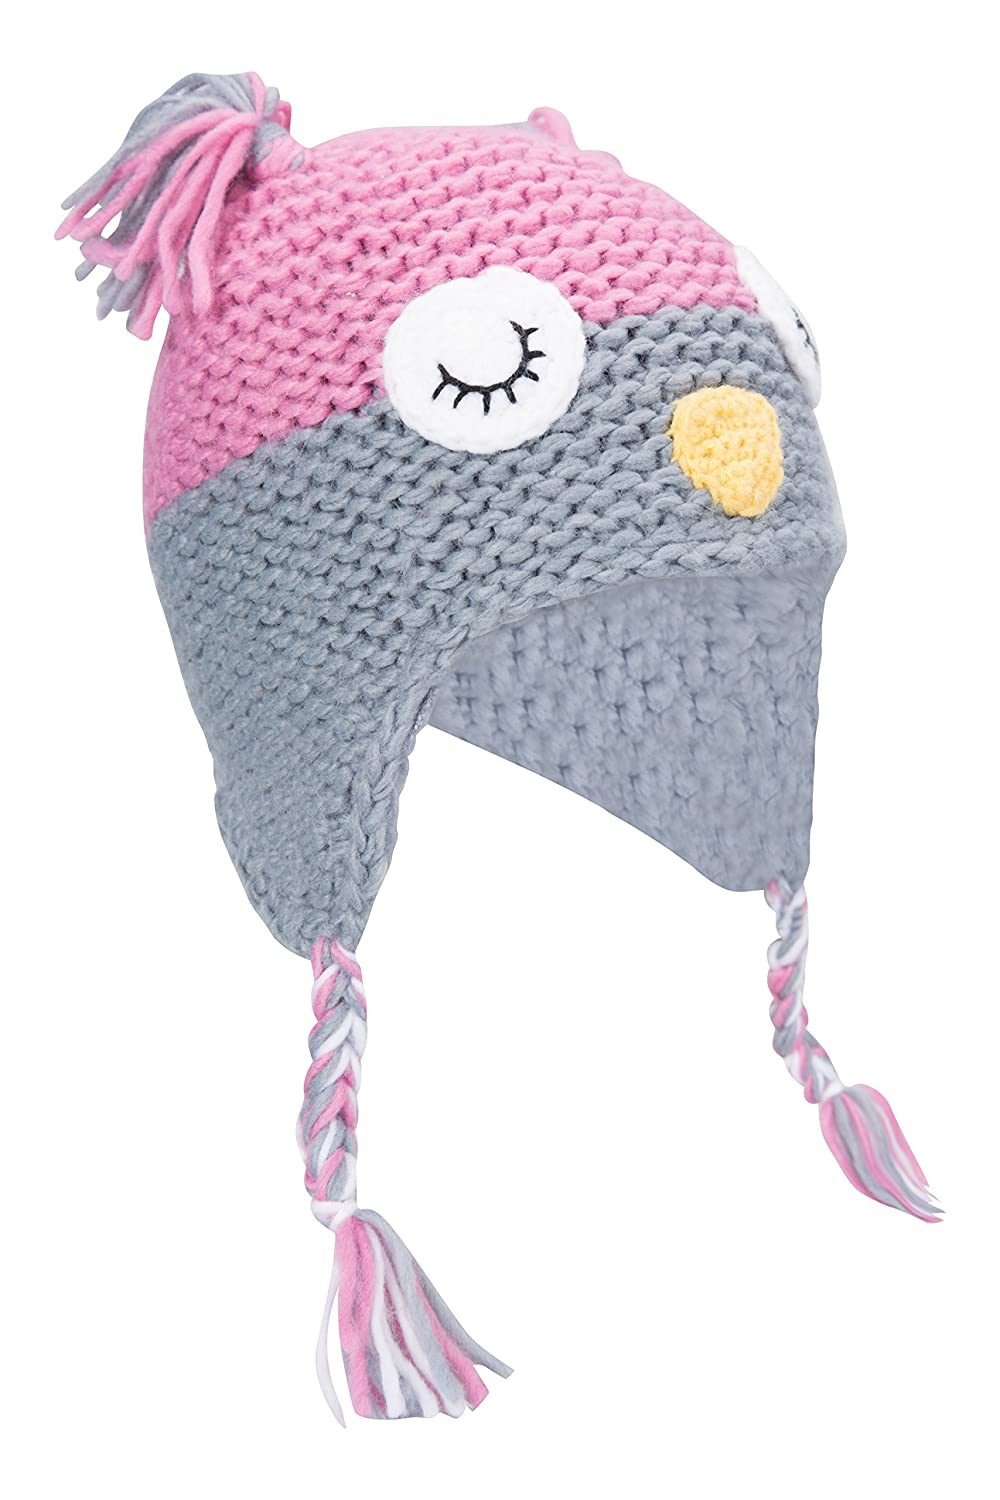 437380d1062404 Mountain Warehouse Owl Knitted Kids Hat - Easy Care & Fleece Lining -  Perfect for Keeping Your Little Ones' Heads Happy This Winter Pale Pink:  Amazon.co.uk: ...